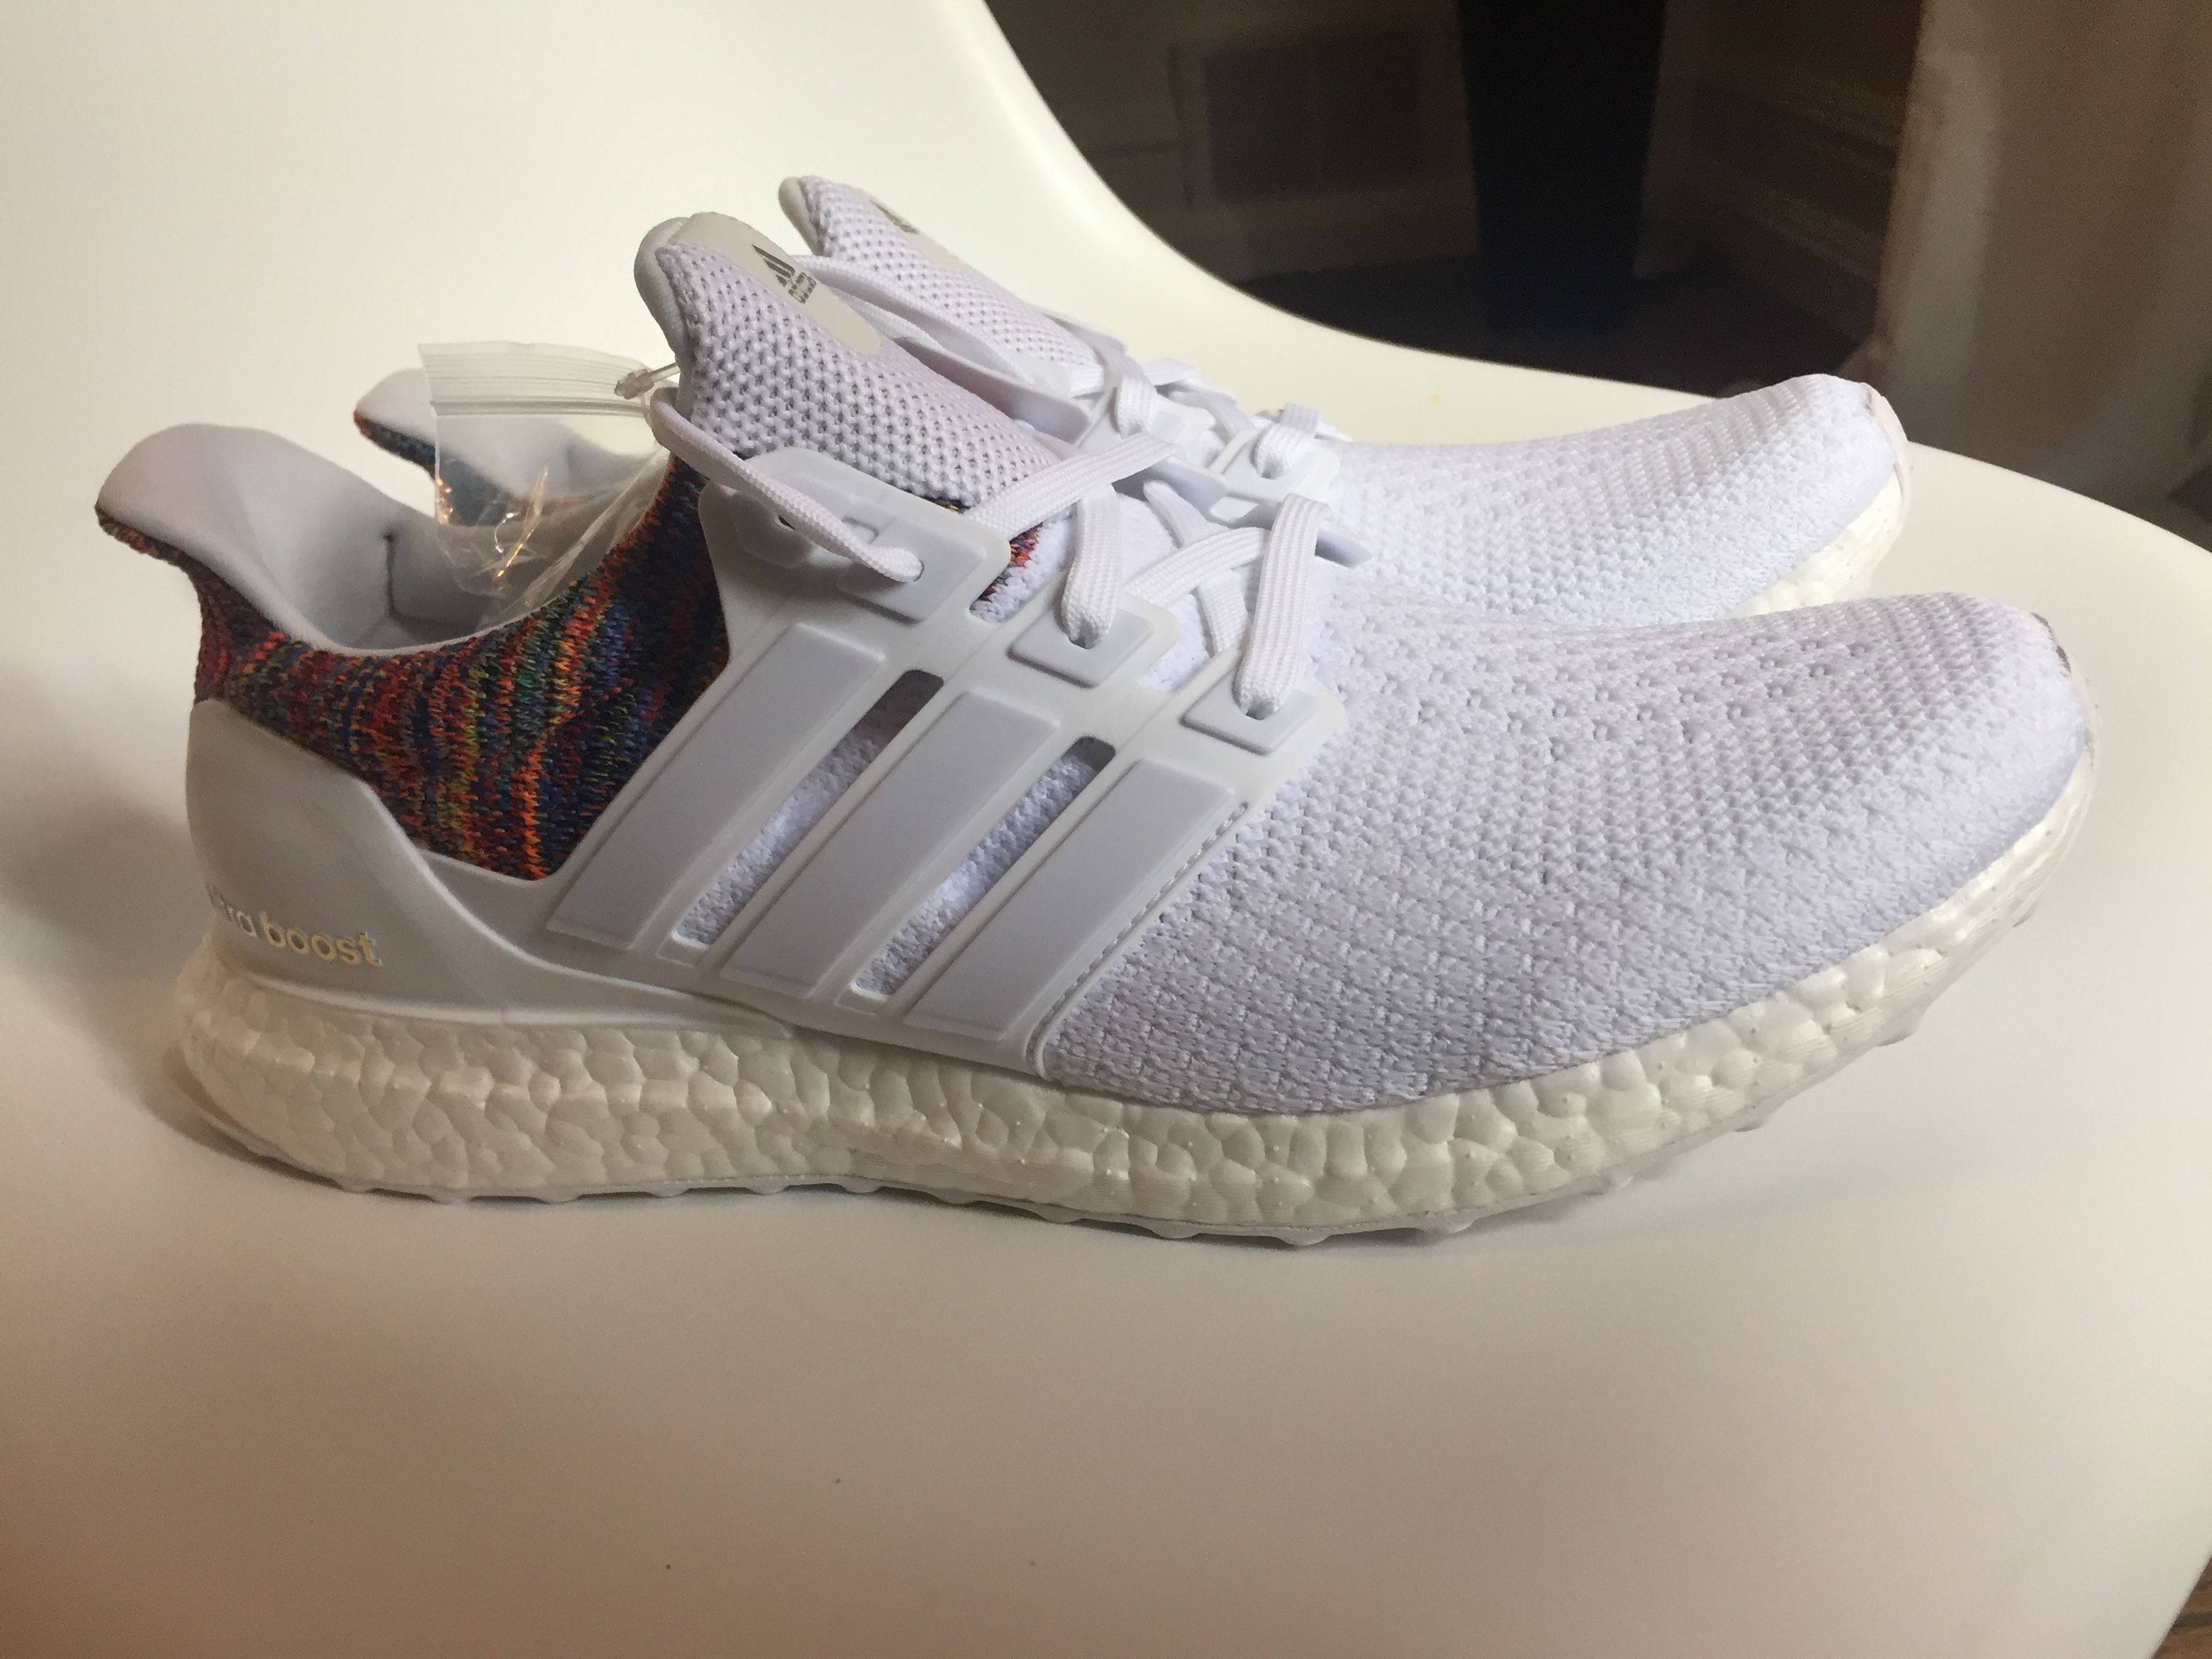 09bec636a2ddb Adidas Mi Adidas Ultra Boost Rainbow Size 11 - Low-Top Sneakers for ...